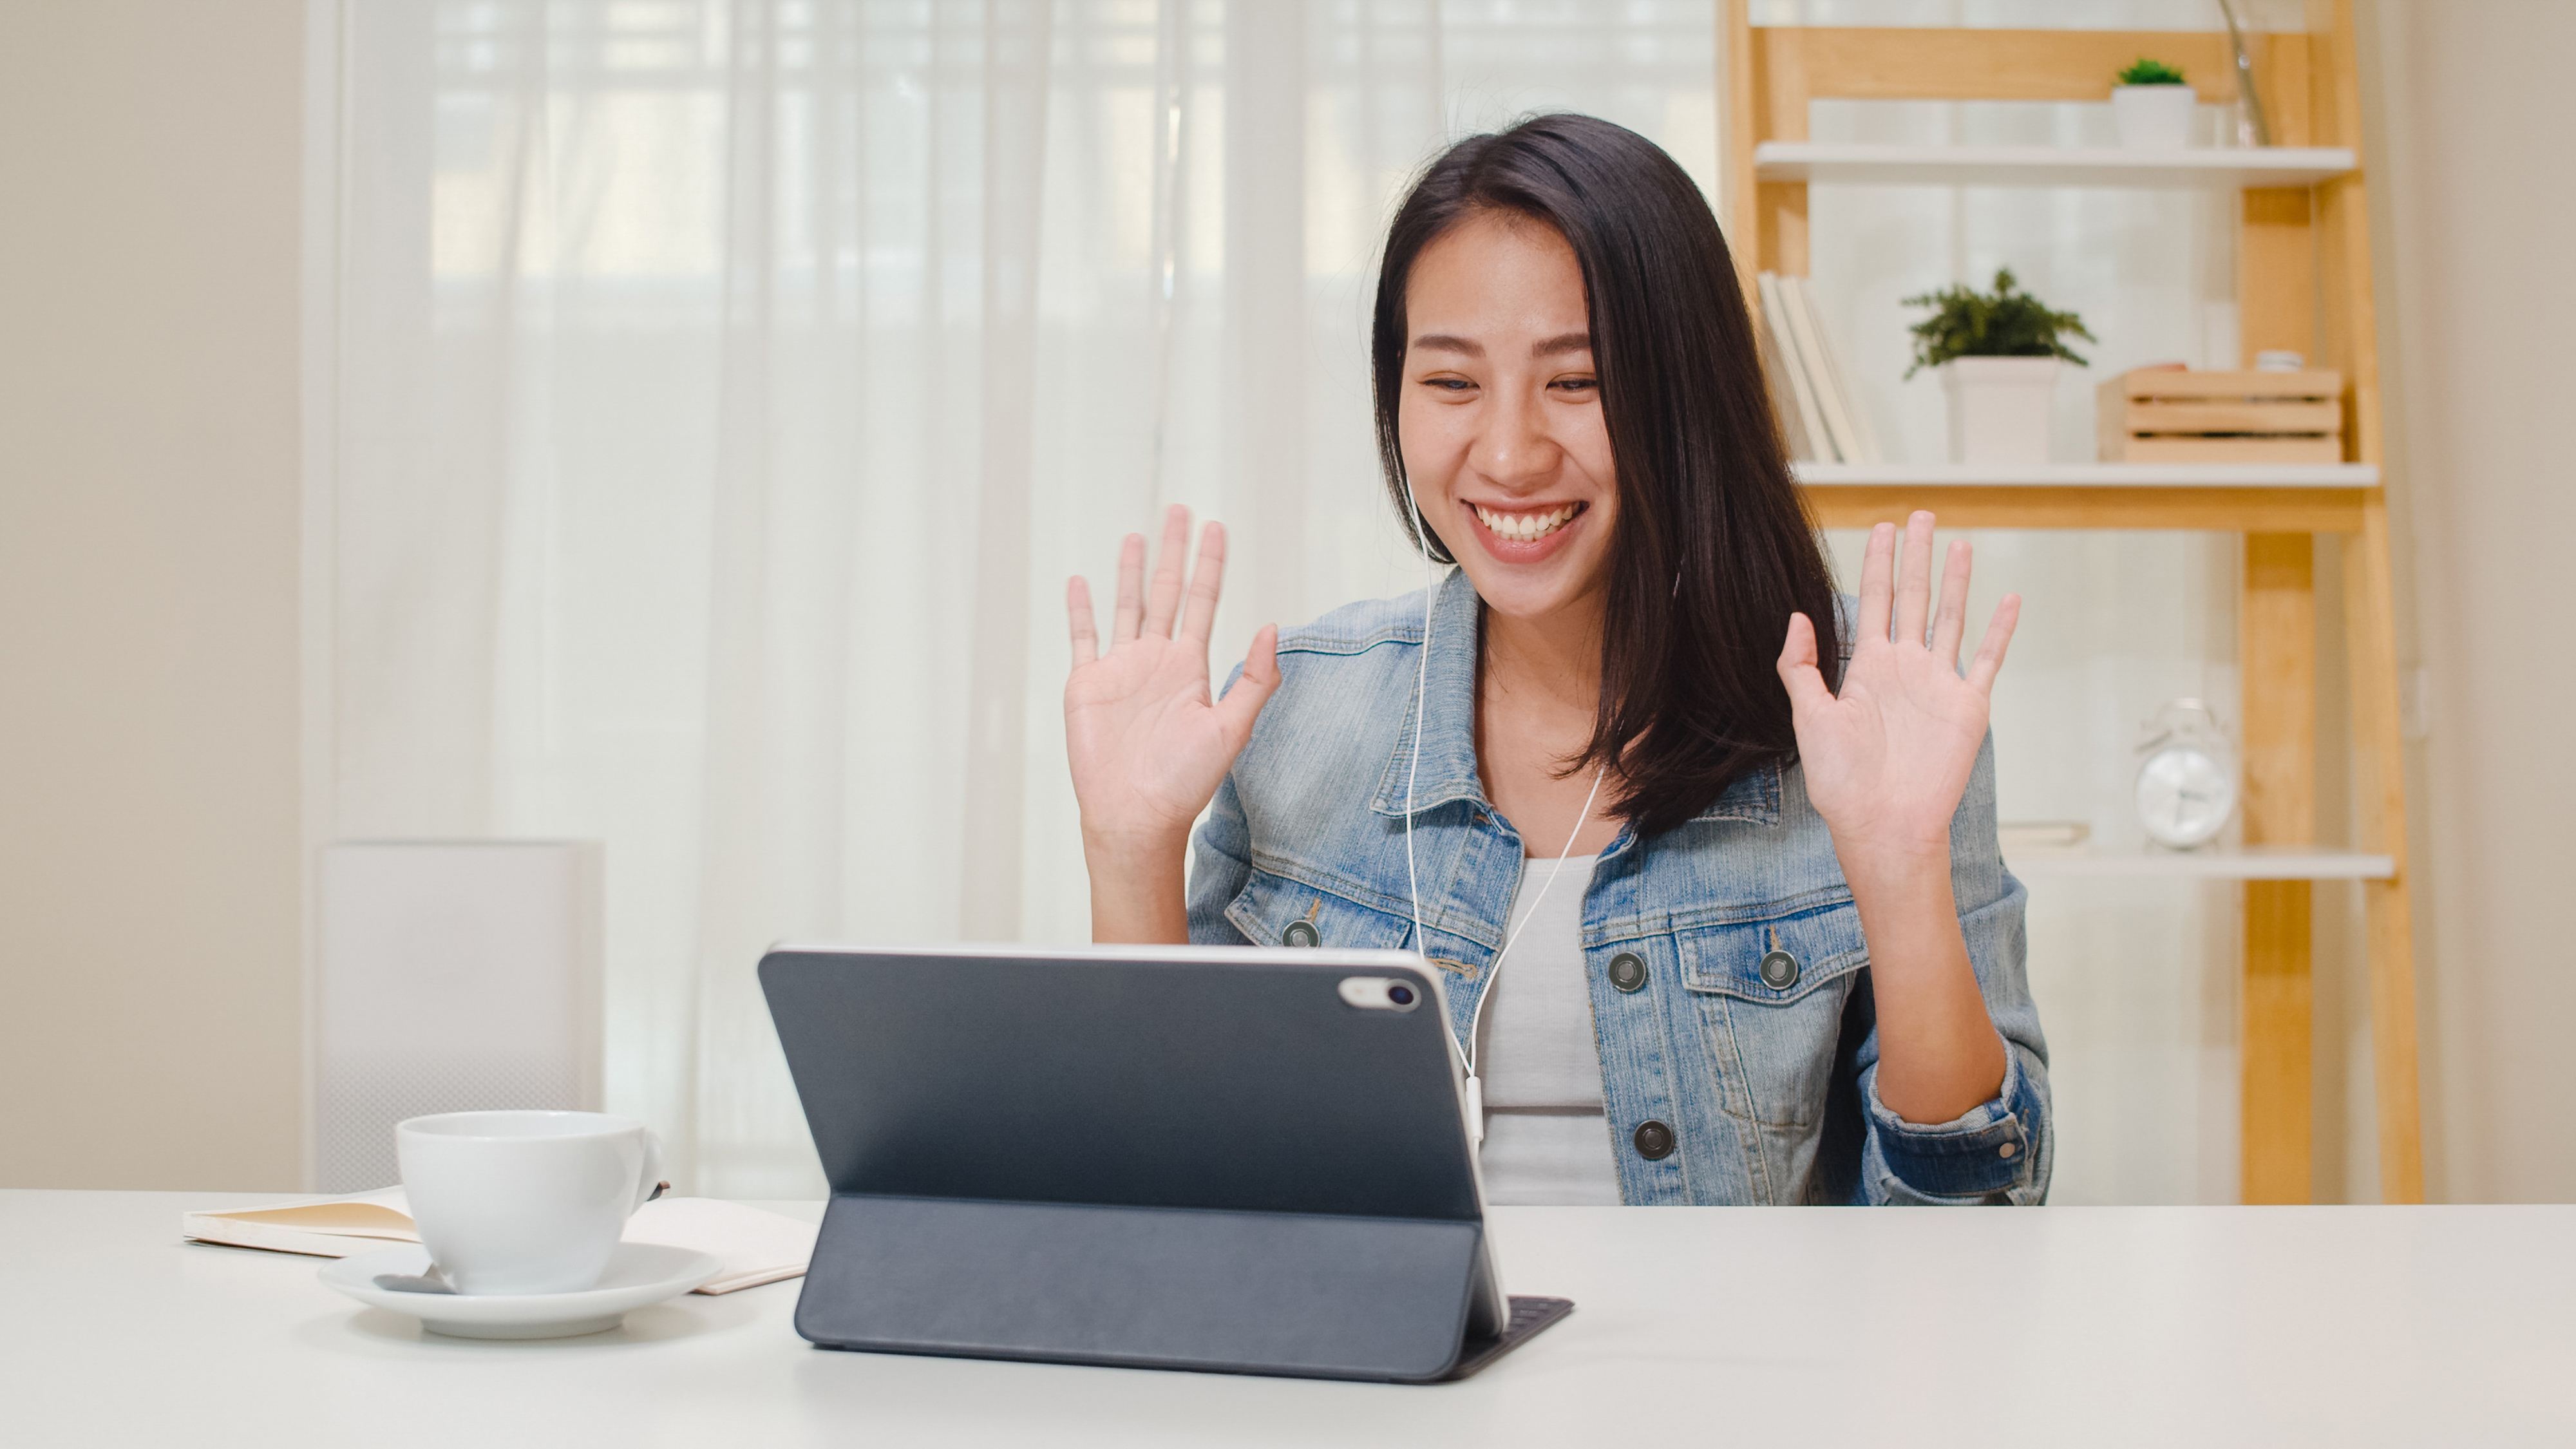 freelance-business-women-casual-wear-using-tablet-working-call-video-conference-with-customer-in-workplace-in-living-room-at-home-happy-young-asian-girl-relax-sitting-on-desk-do-job-in-internet